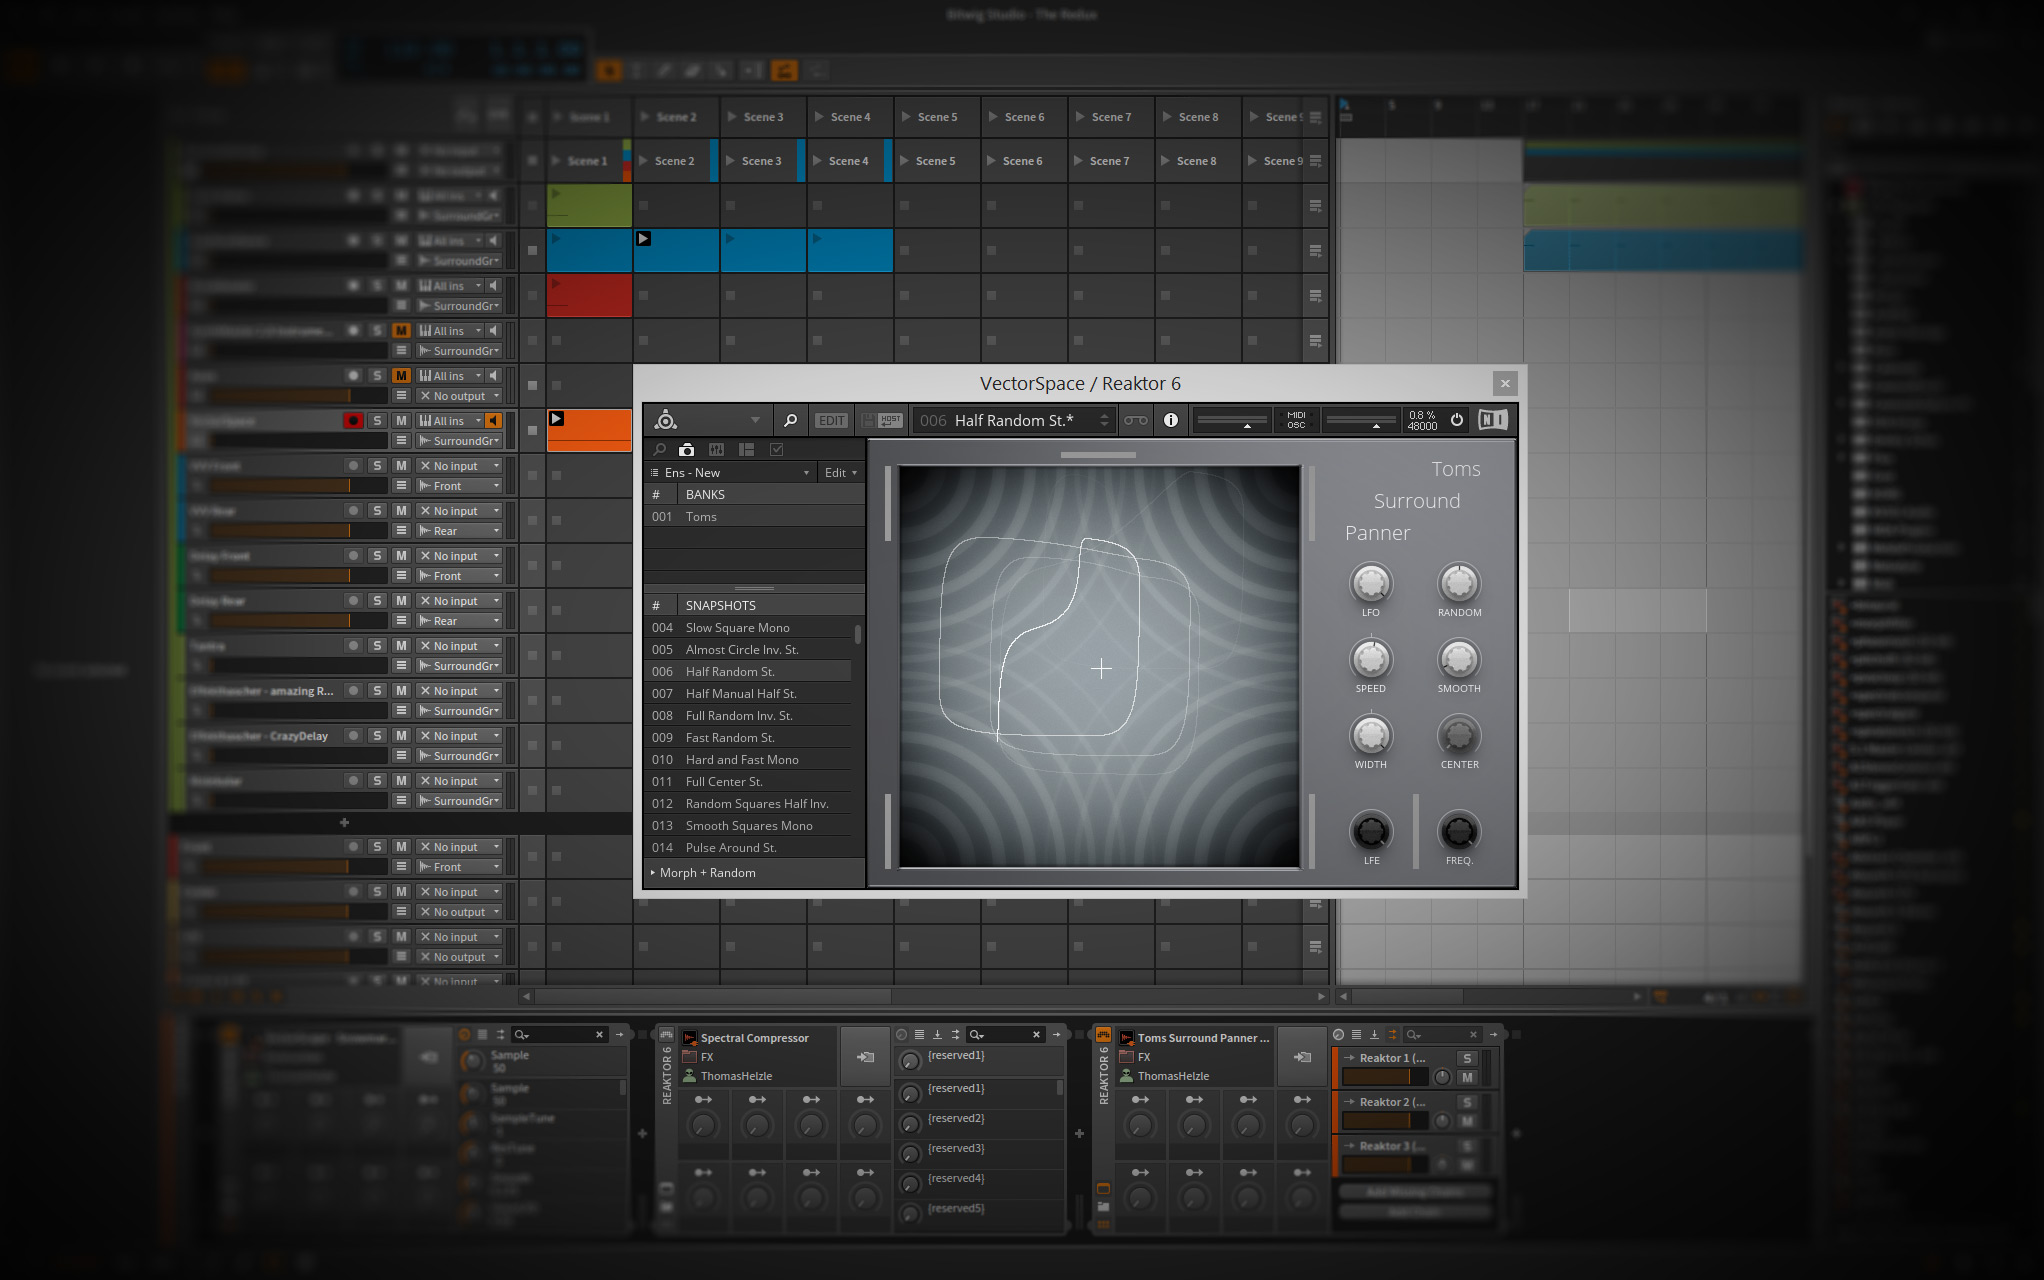 My Tool for NI Reaktor 6 to enable simple surround panning in Bitwig Studio